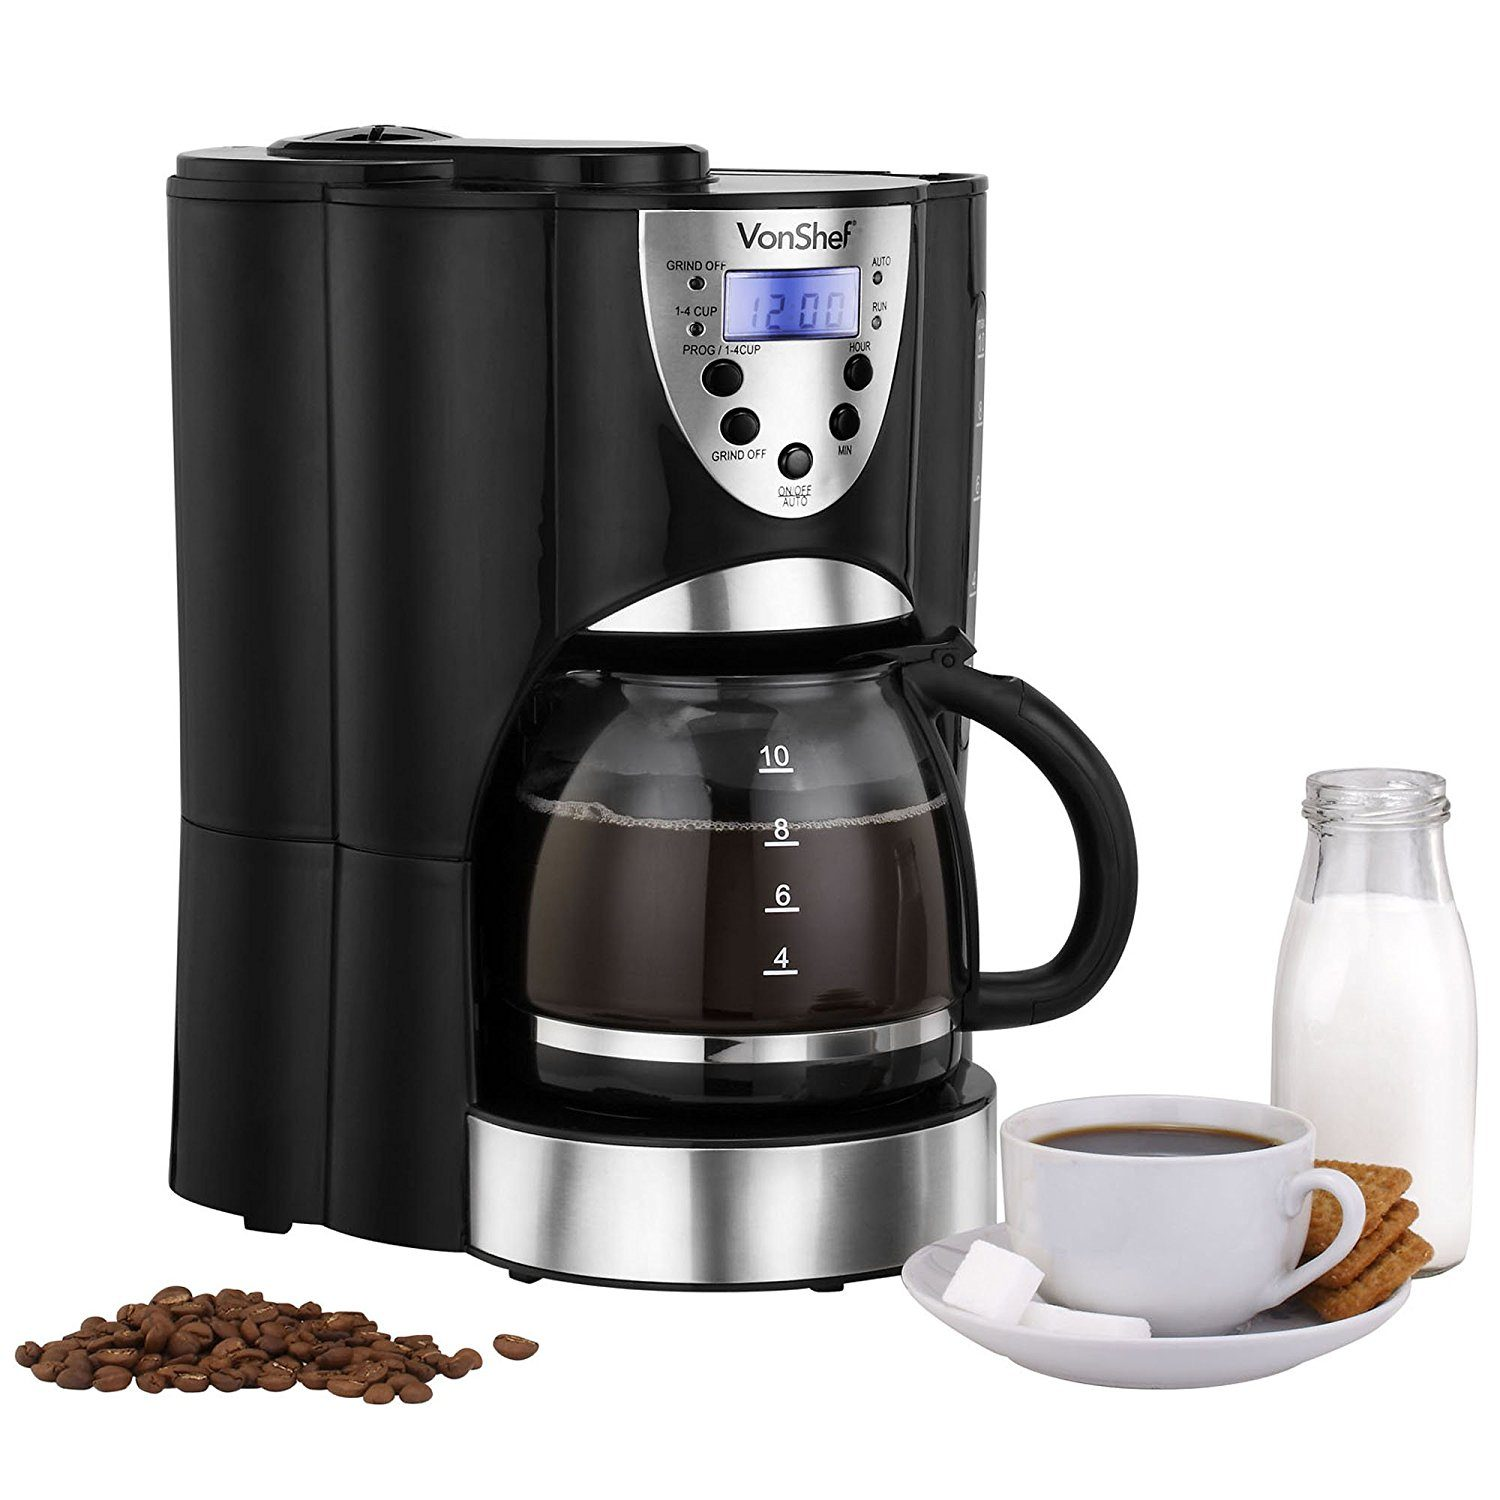 VonShef Digital Filter Coffee Maker